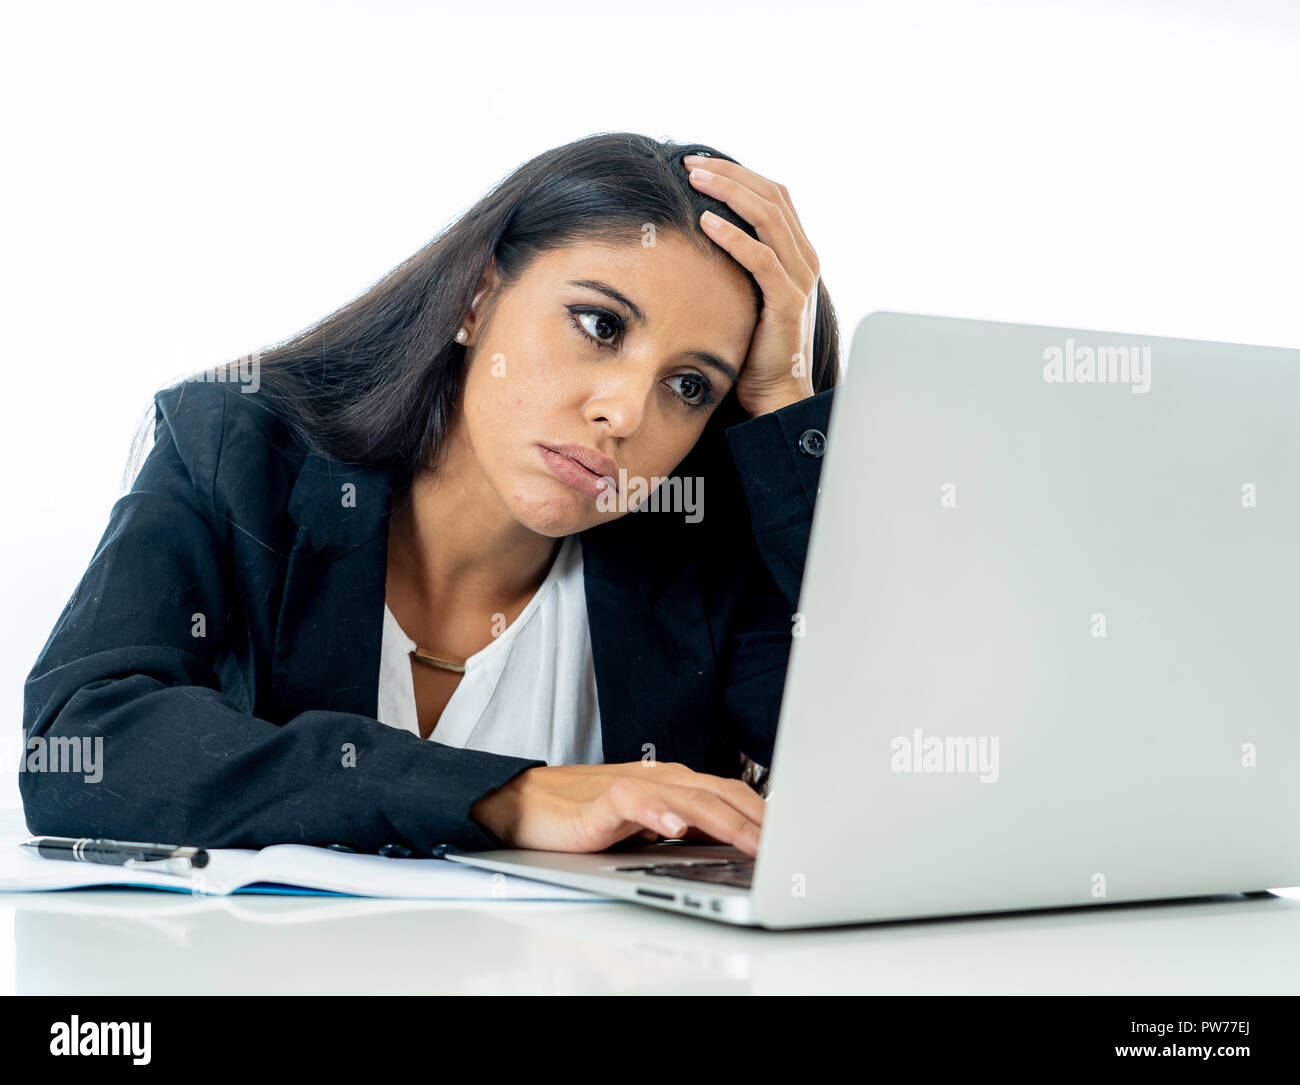 Young attractive businesswoman desperate and frustrated working on computer laptop at office in overtime and non fulfillment of ones hopes or professi - Stock Image